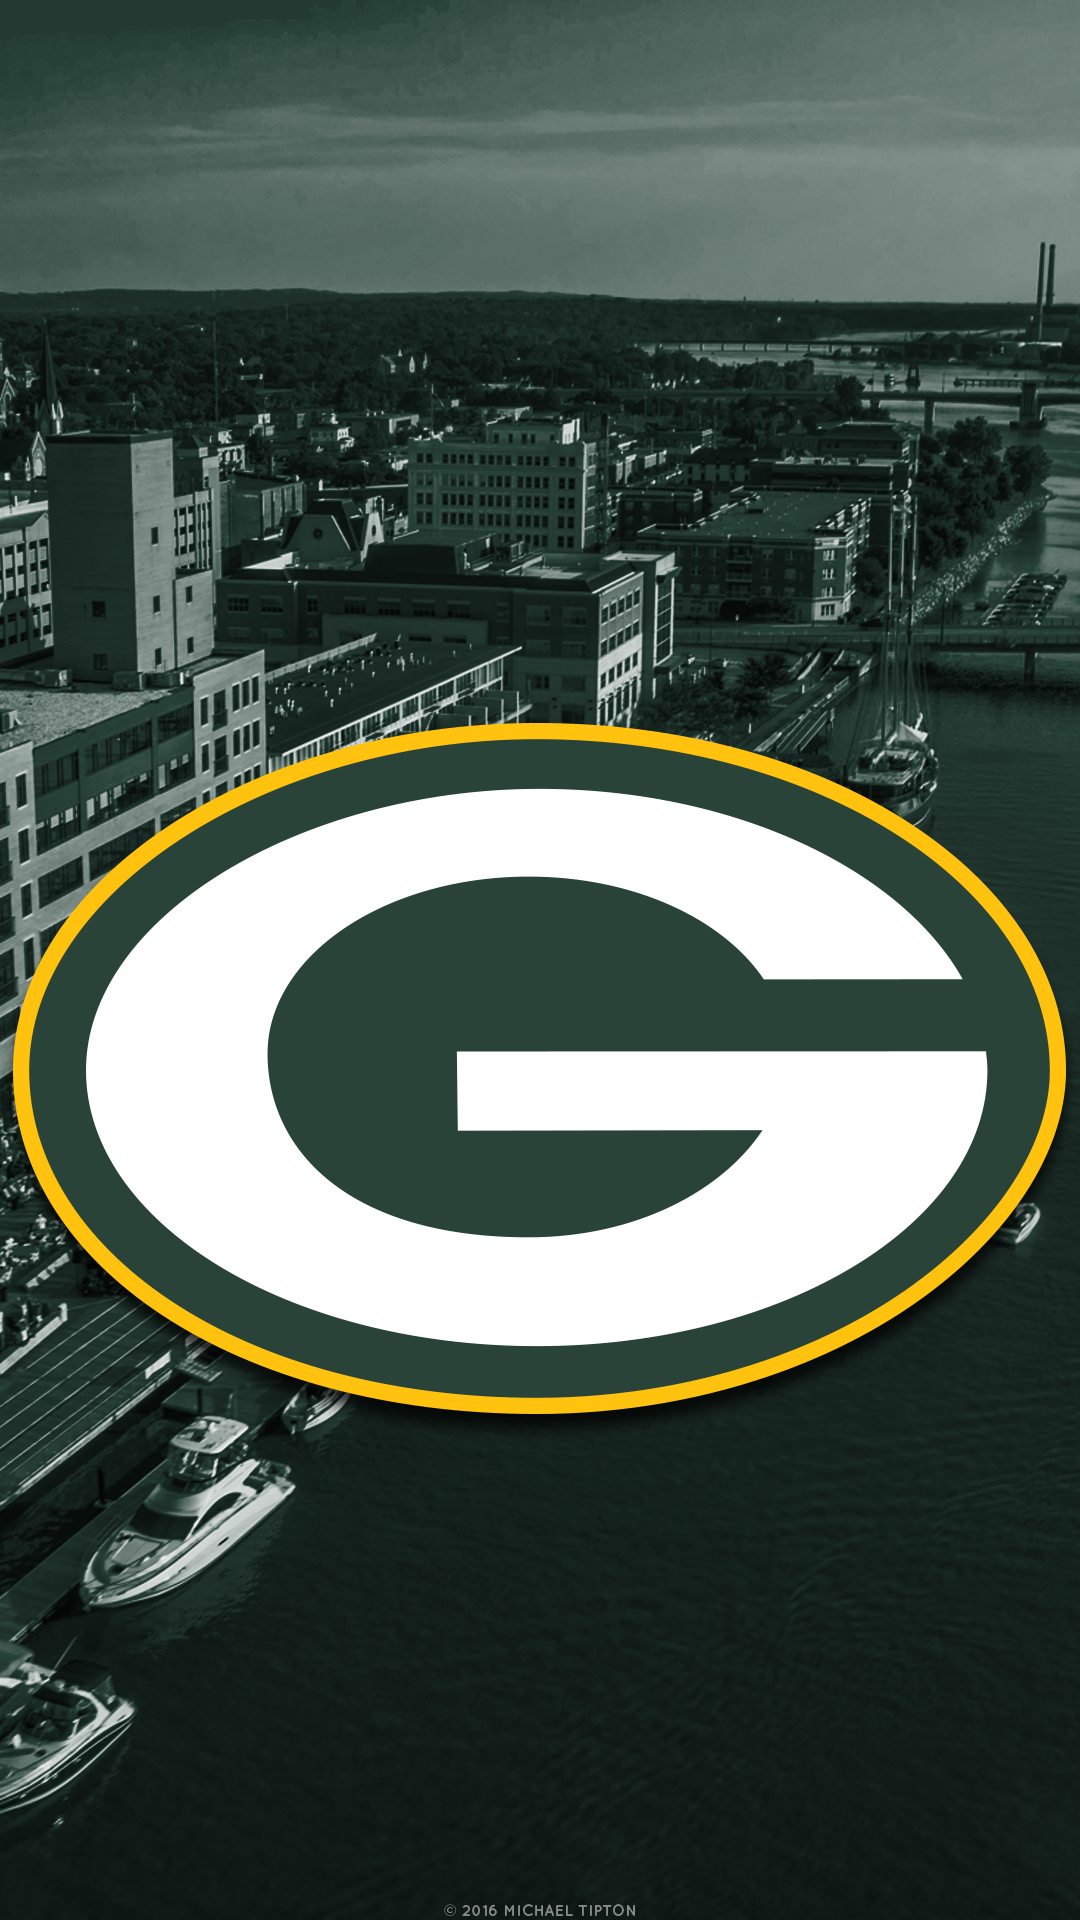 Aaron Rodgers Green Bay Packers Image In 2020 Green Bay Packers Wallpaper Green Bay Packers Green Bay